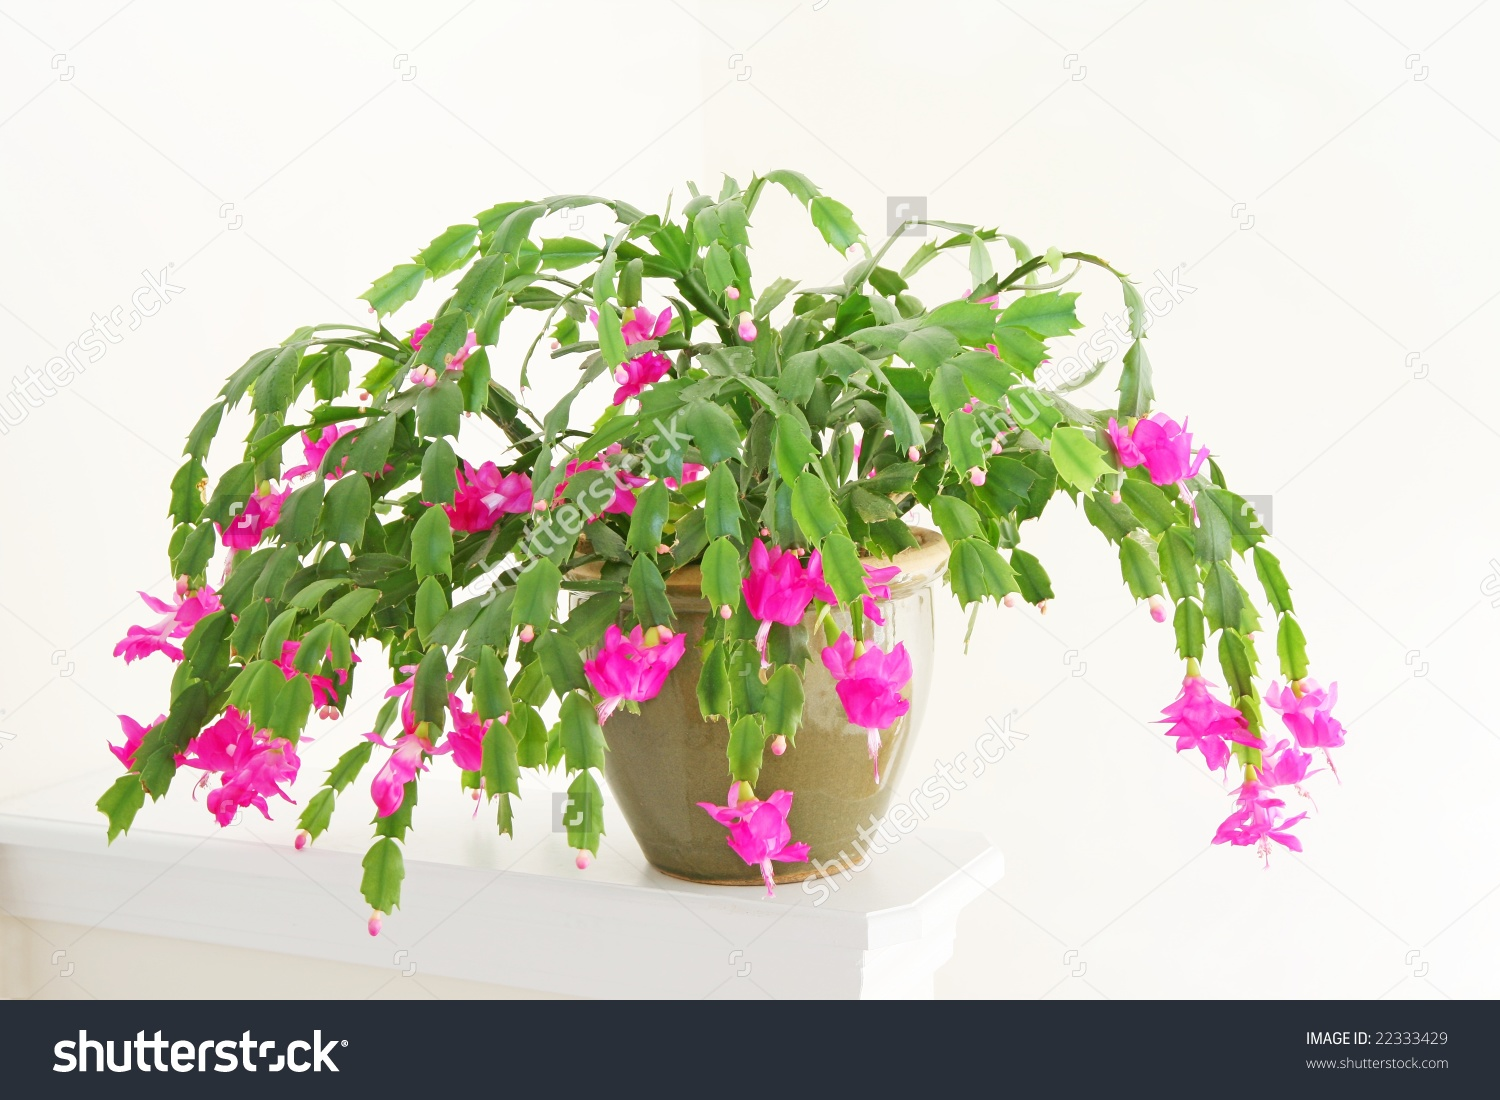 Christmas Cactus Zygocactus Truncatus Flowering Pot Stock Photo.